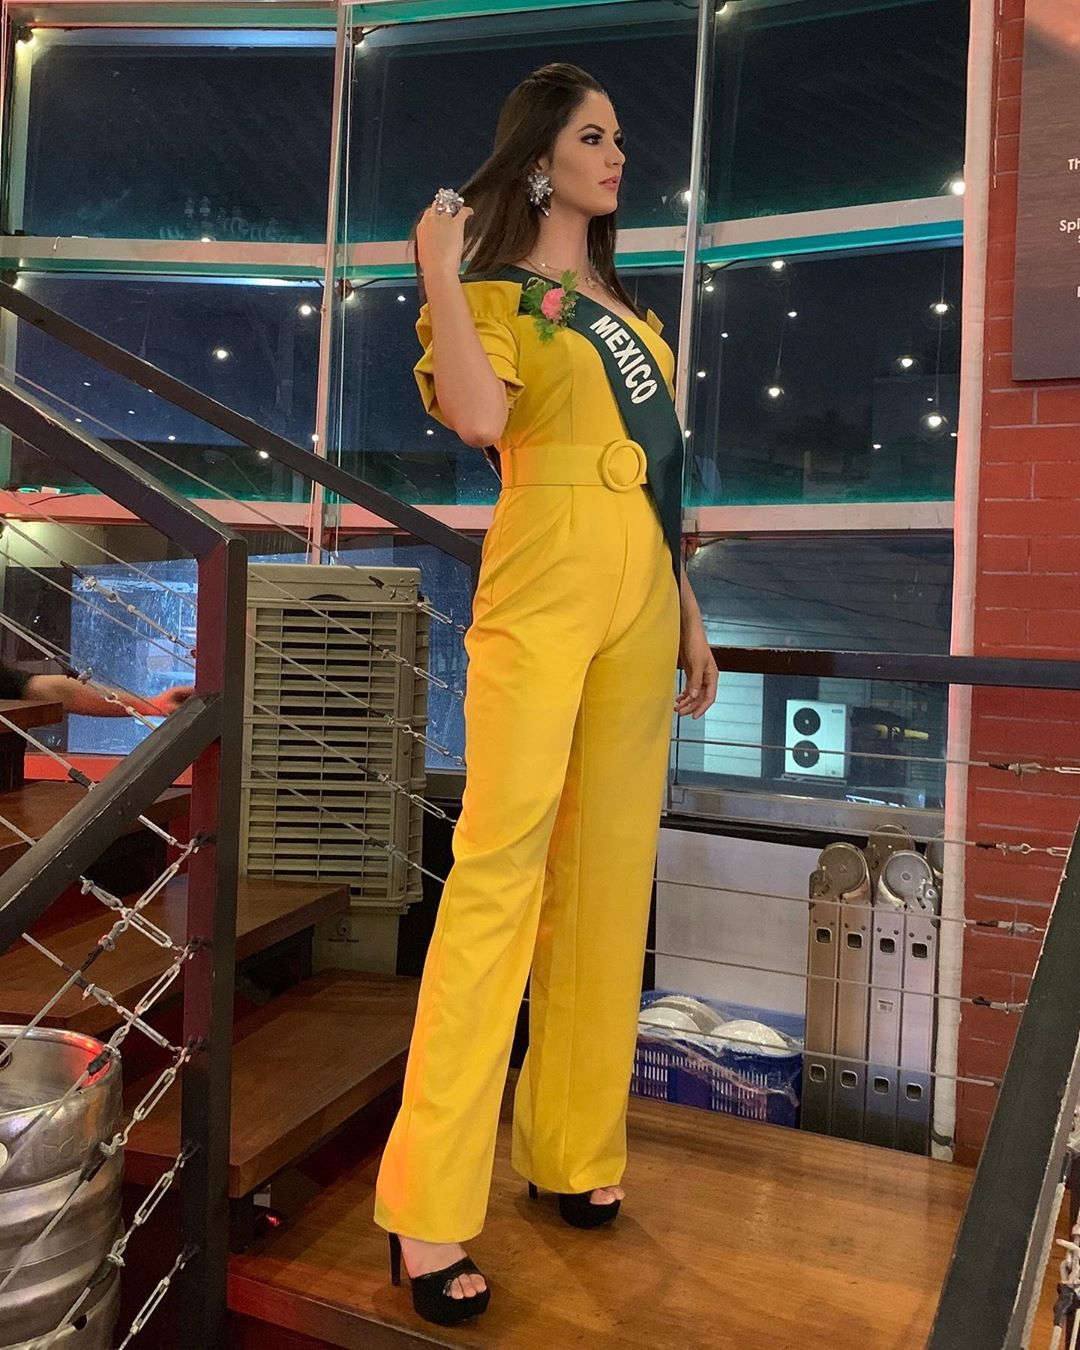 hilary islas, miss earth mexico 2019. - Página 14 70732011